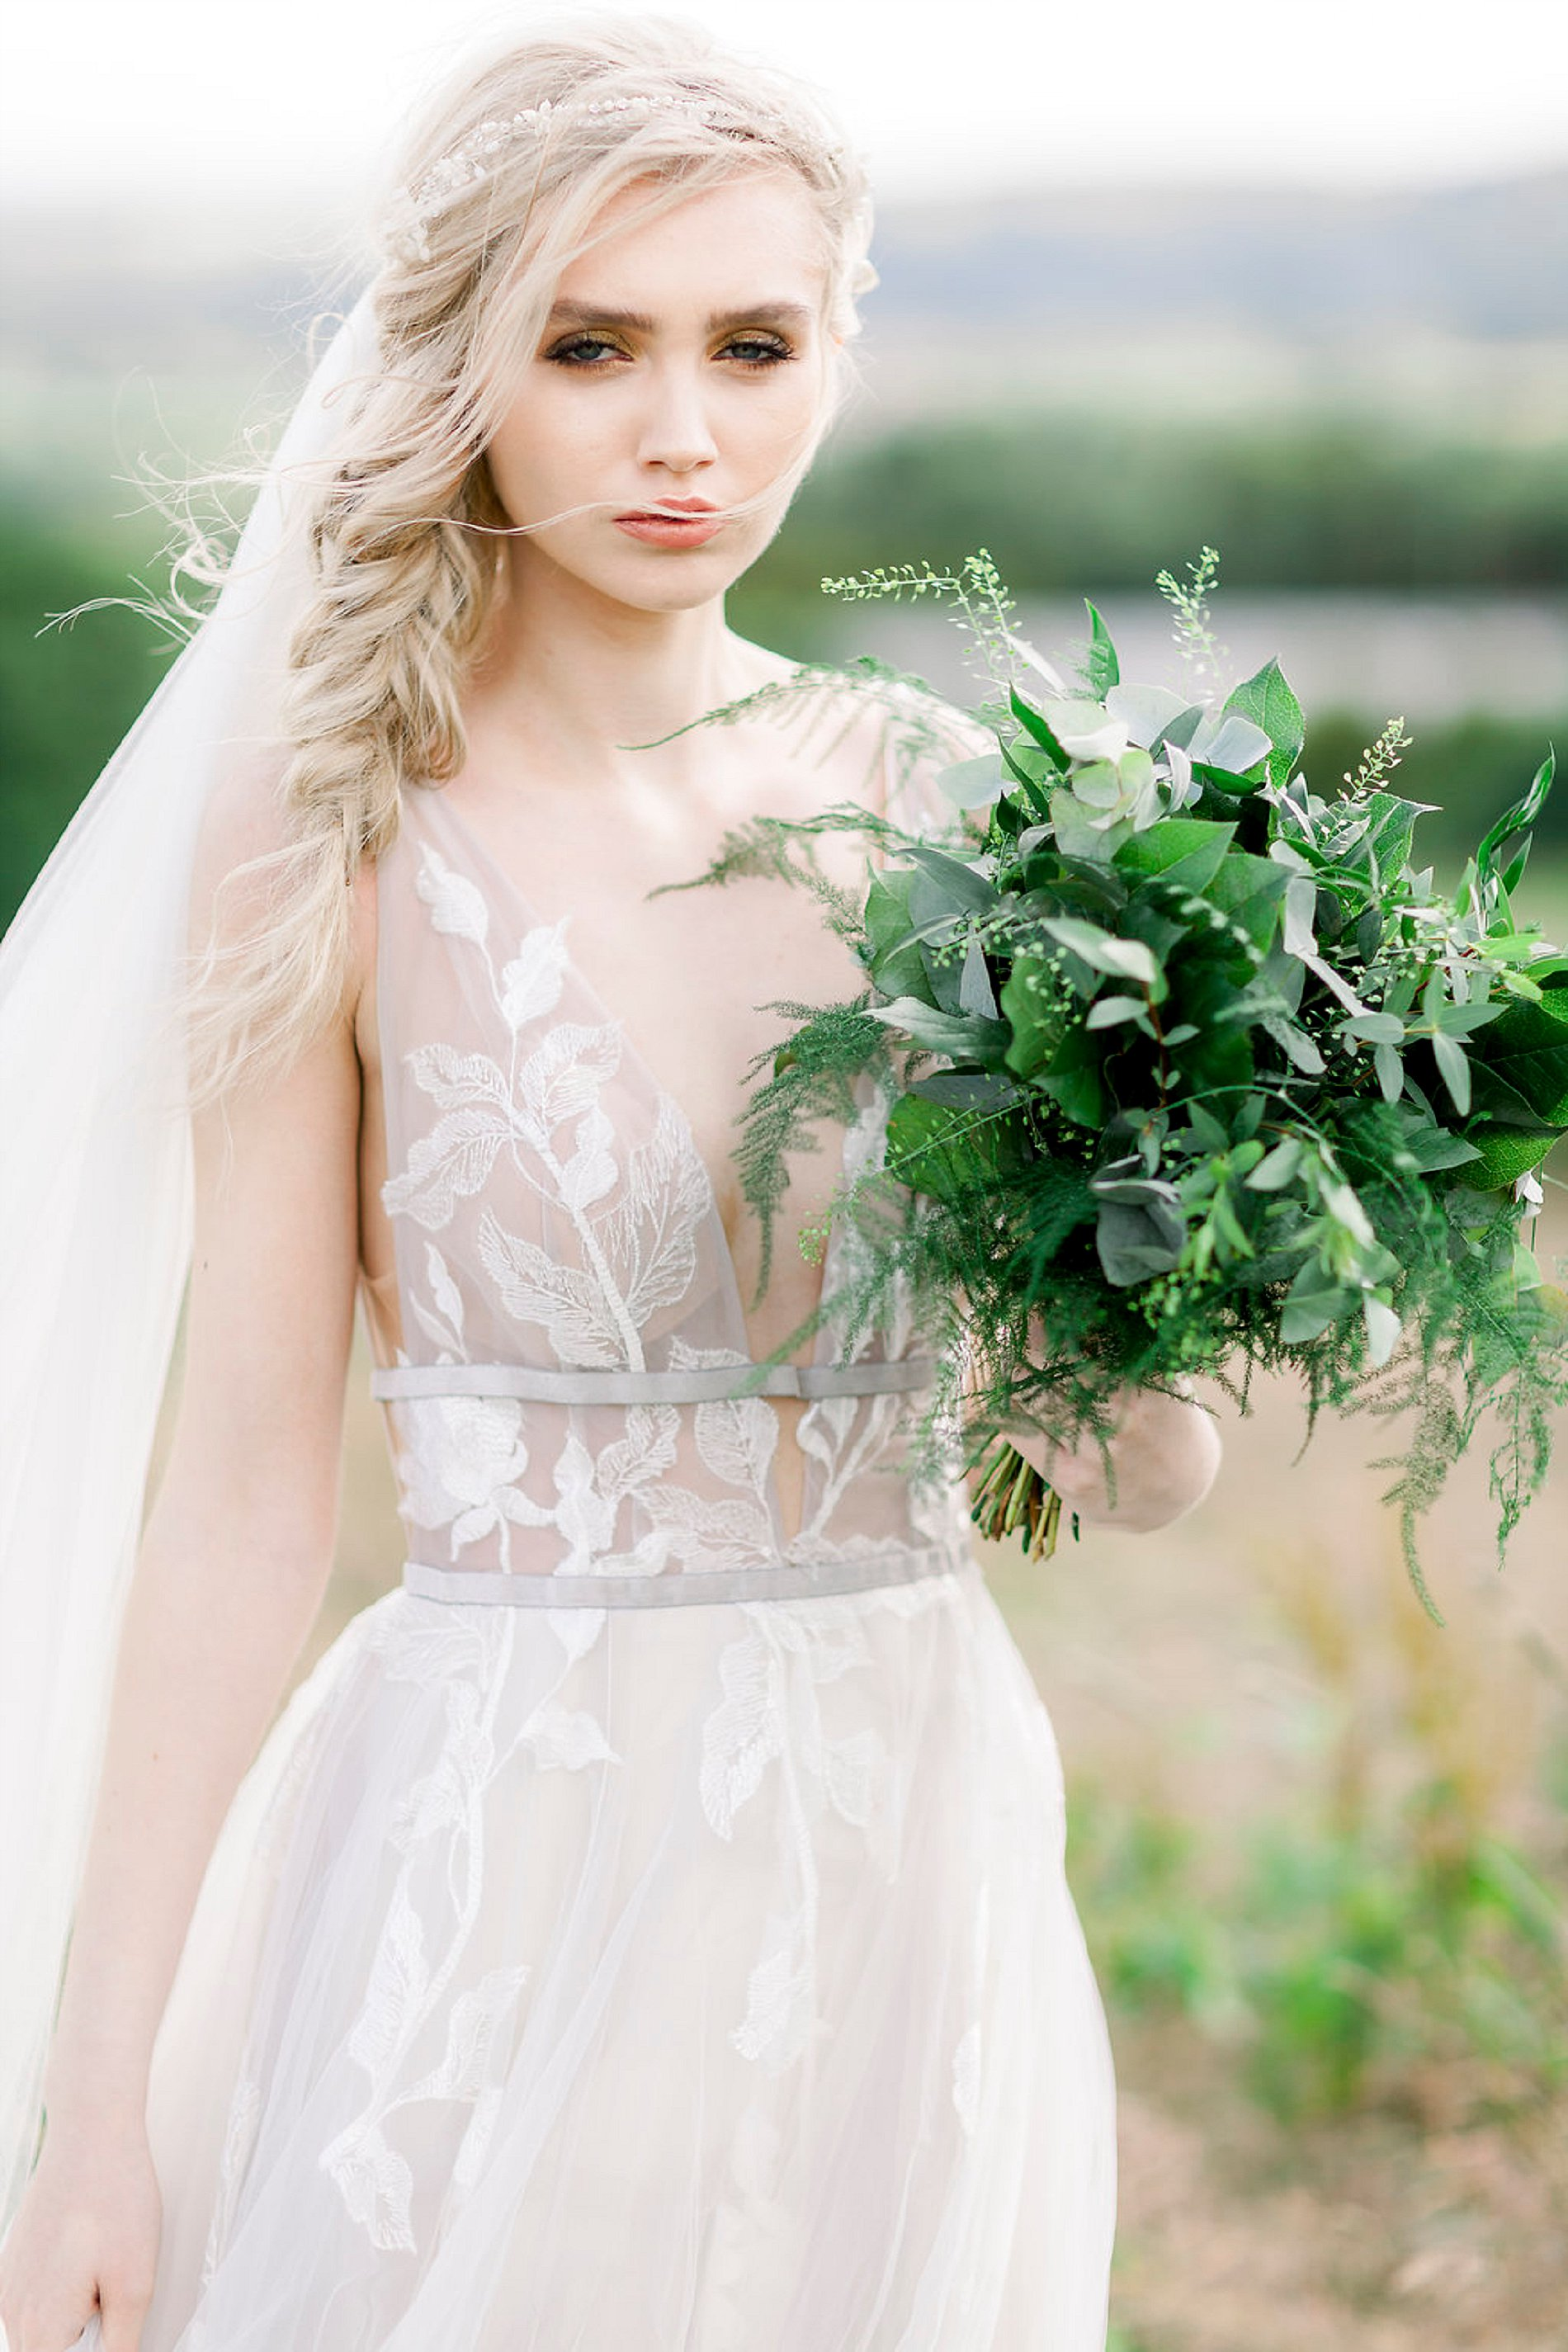 Super Natural Creative Bridal Editorial (c) Jo Bradbury (28)